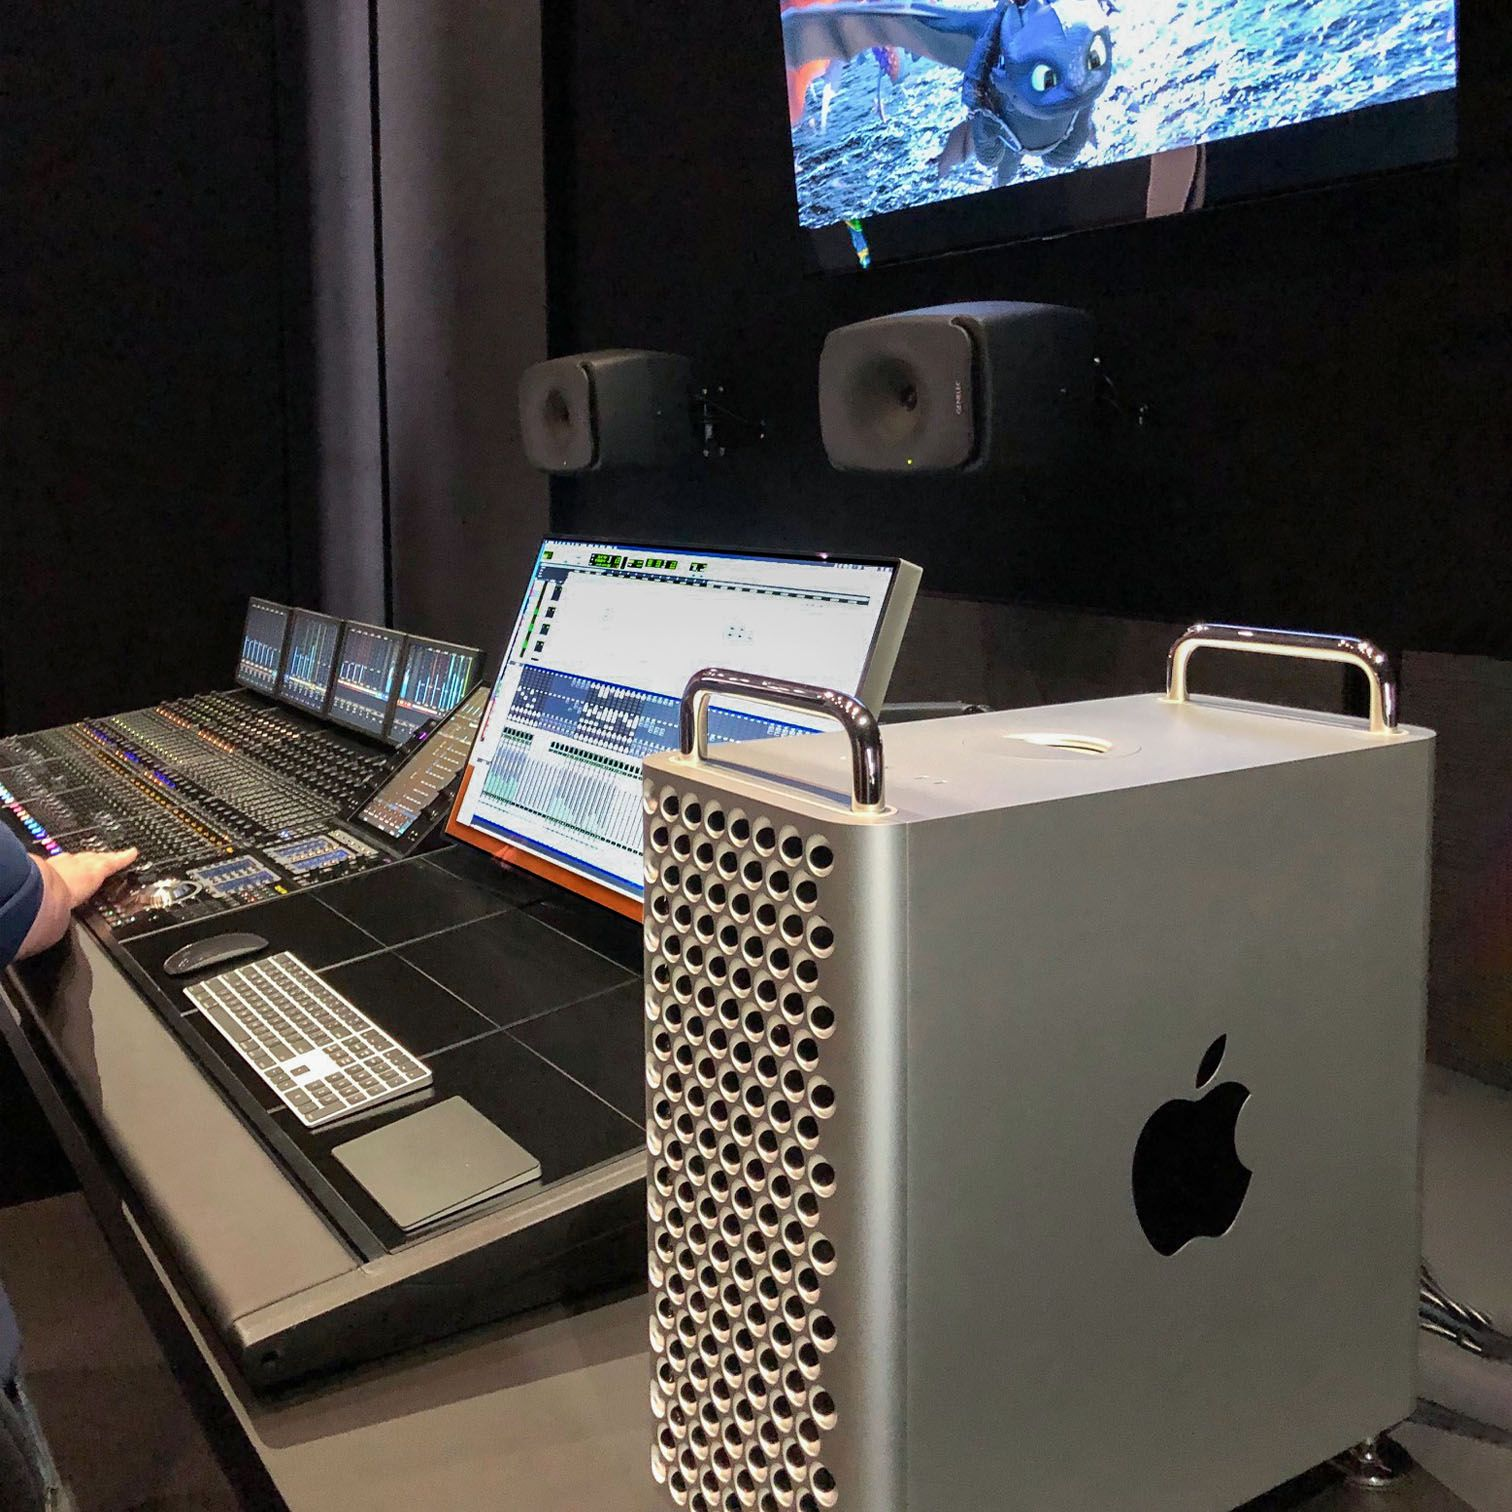 As Seen At Wwdc19 The New Mac Pro With 6 Hdx Cards Powers The 192 Khz Pro Tools Music Mix Of Recording Studio Design Home Studio Music Home Recording Studio